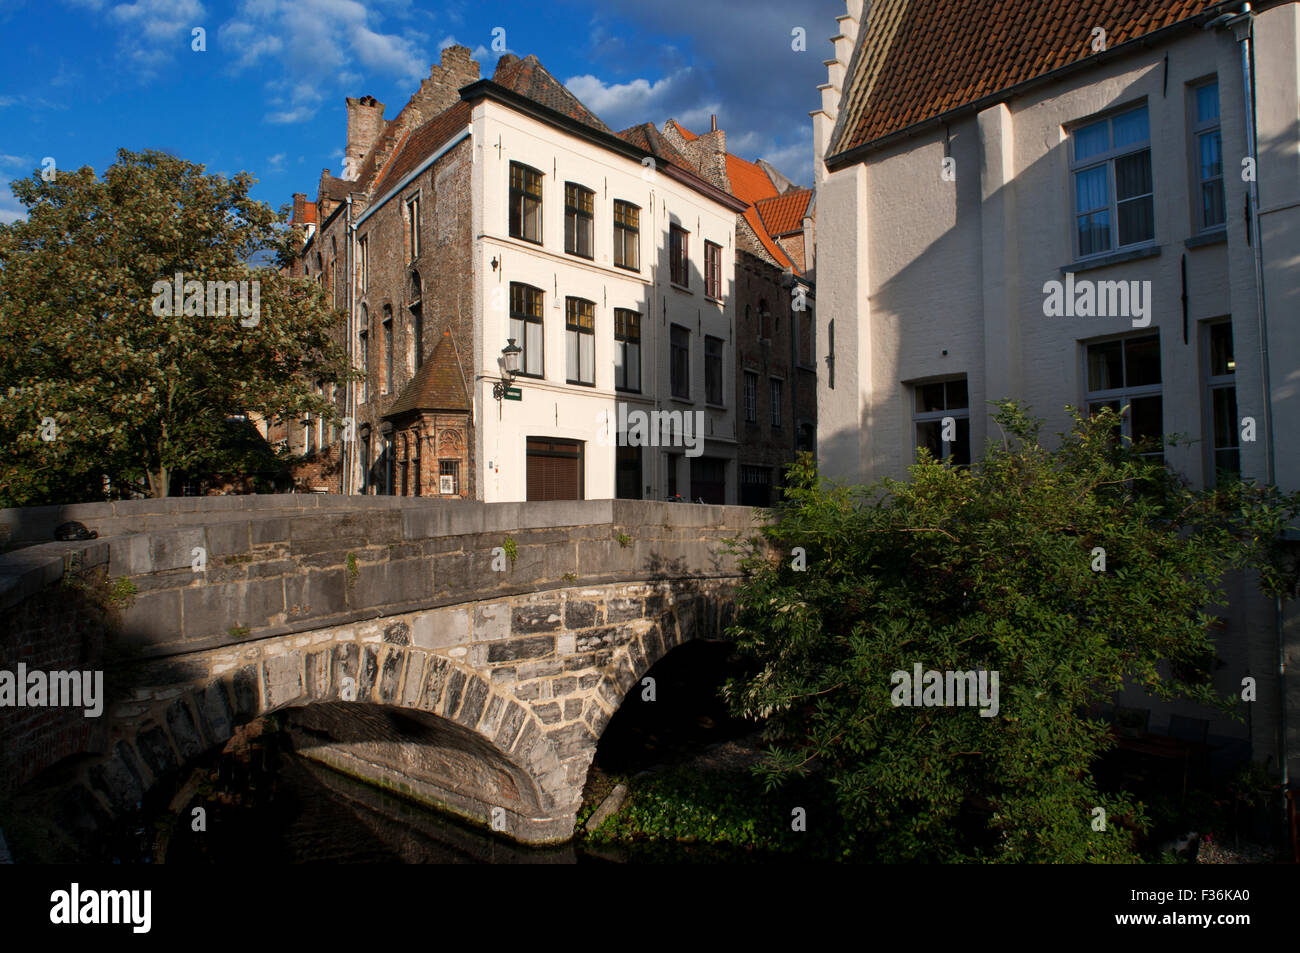 Bridge over one of the canals in Bruges, Belgium. Points of interest in Brugge are the more than 50 bridges that - Stock Image